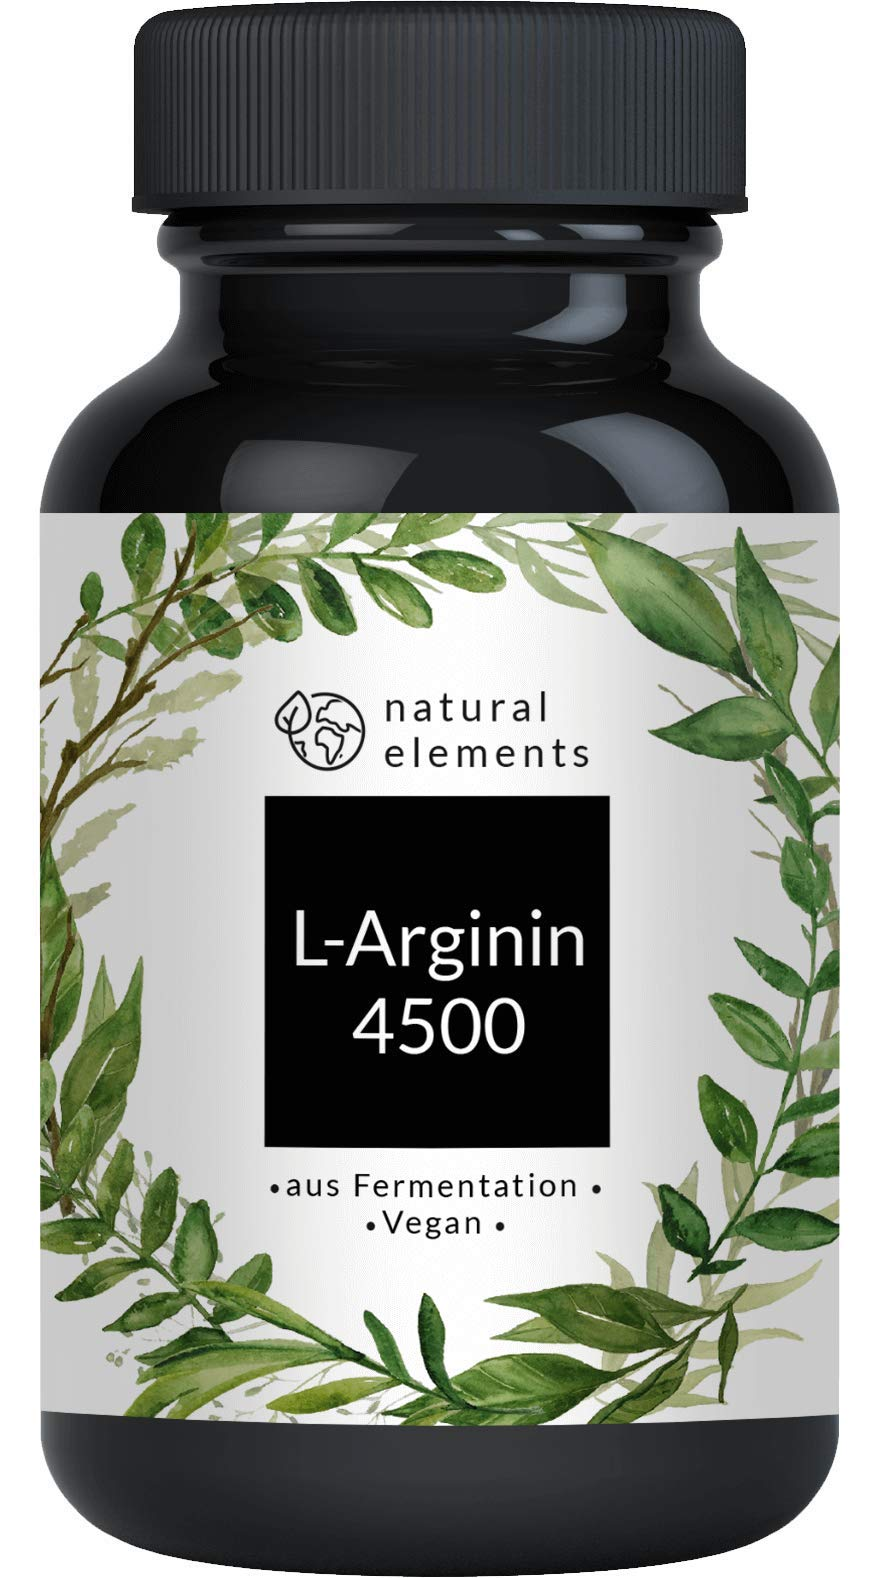 L-Arginin Natural Elements